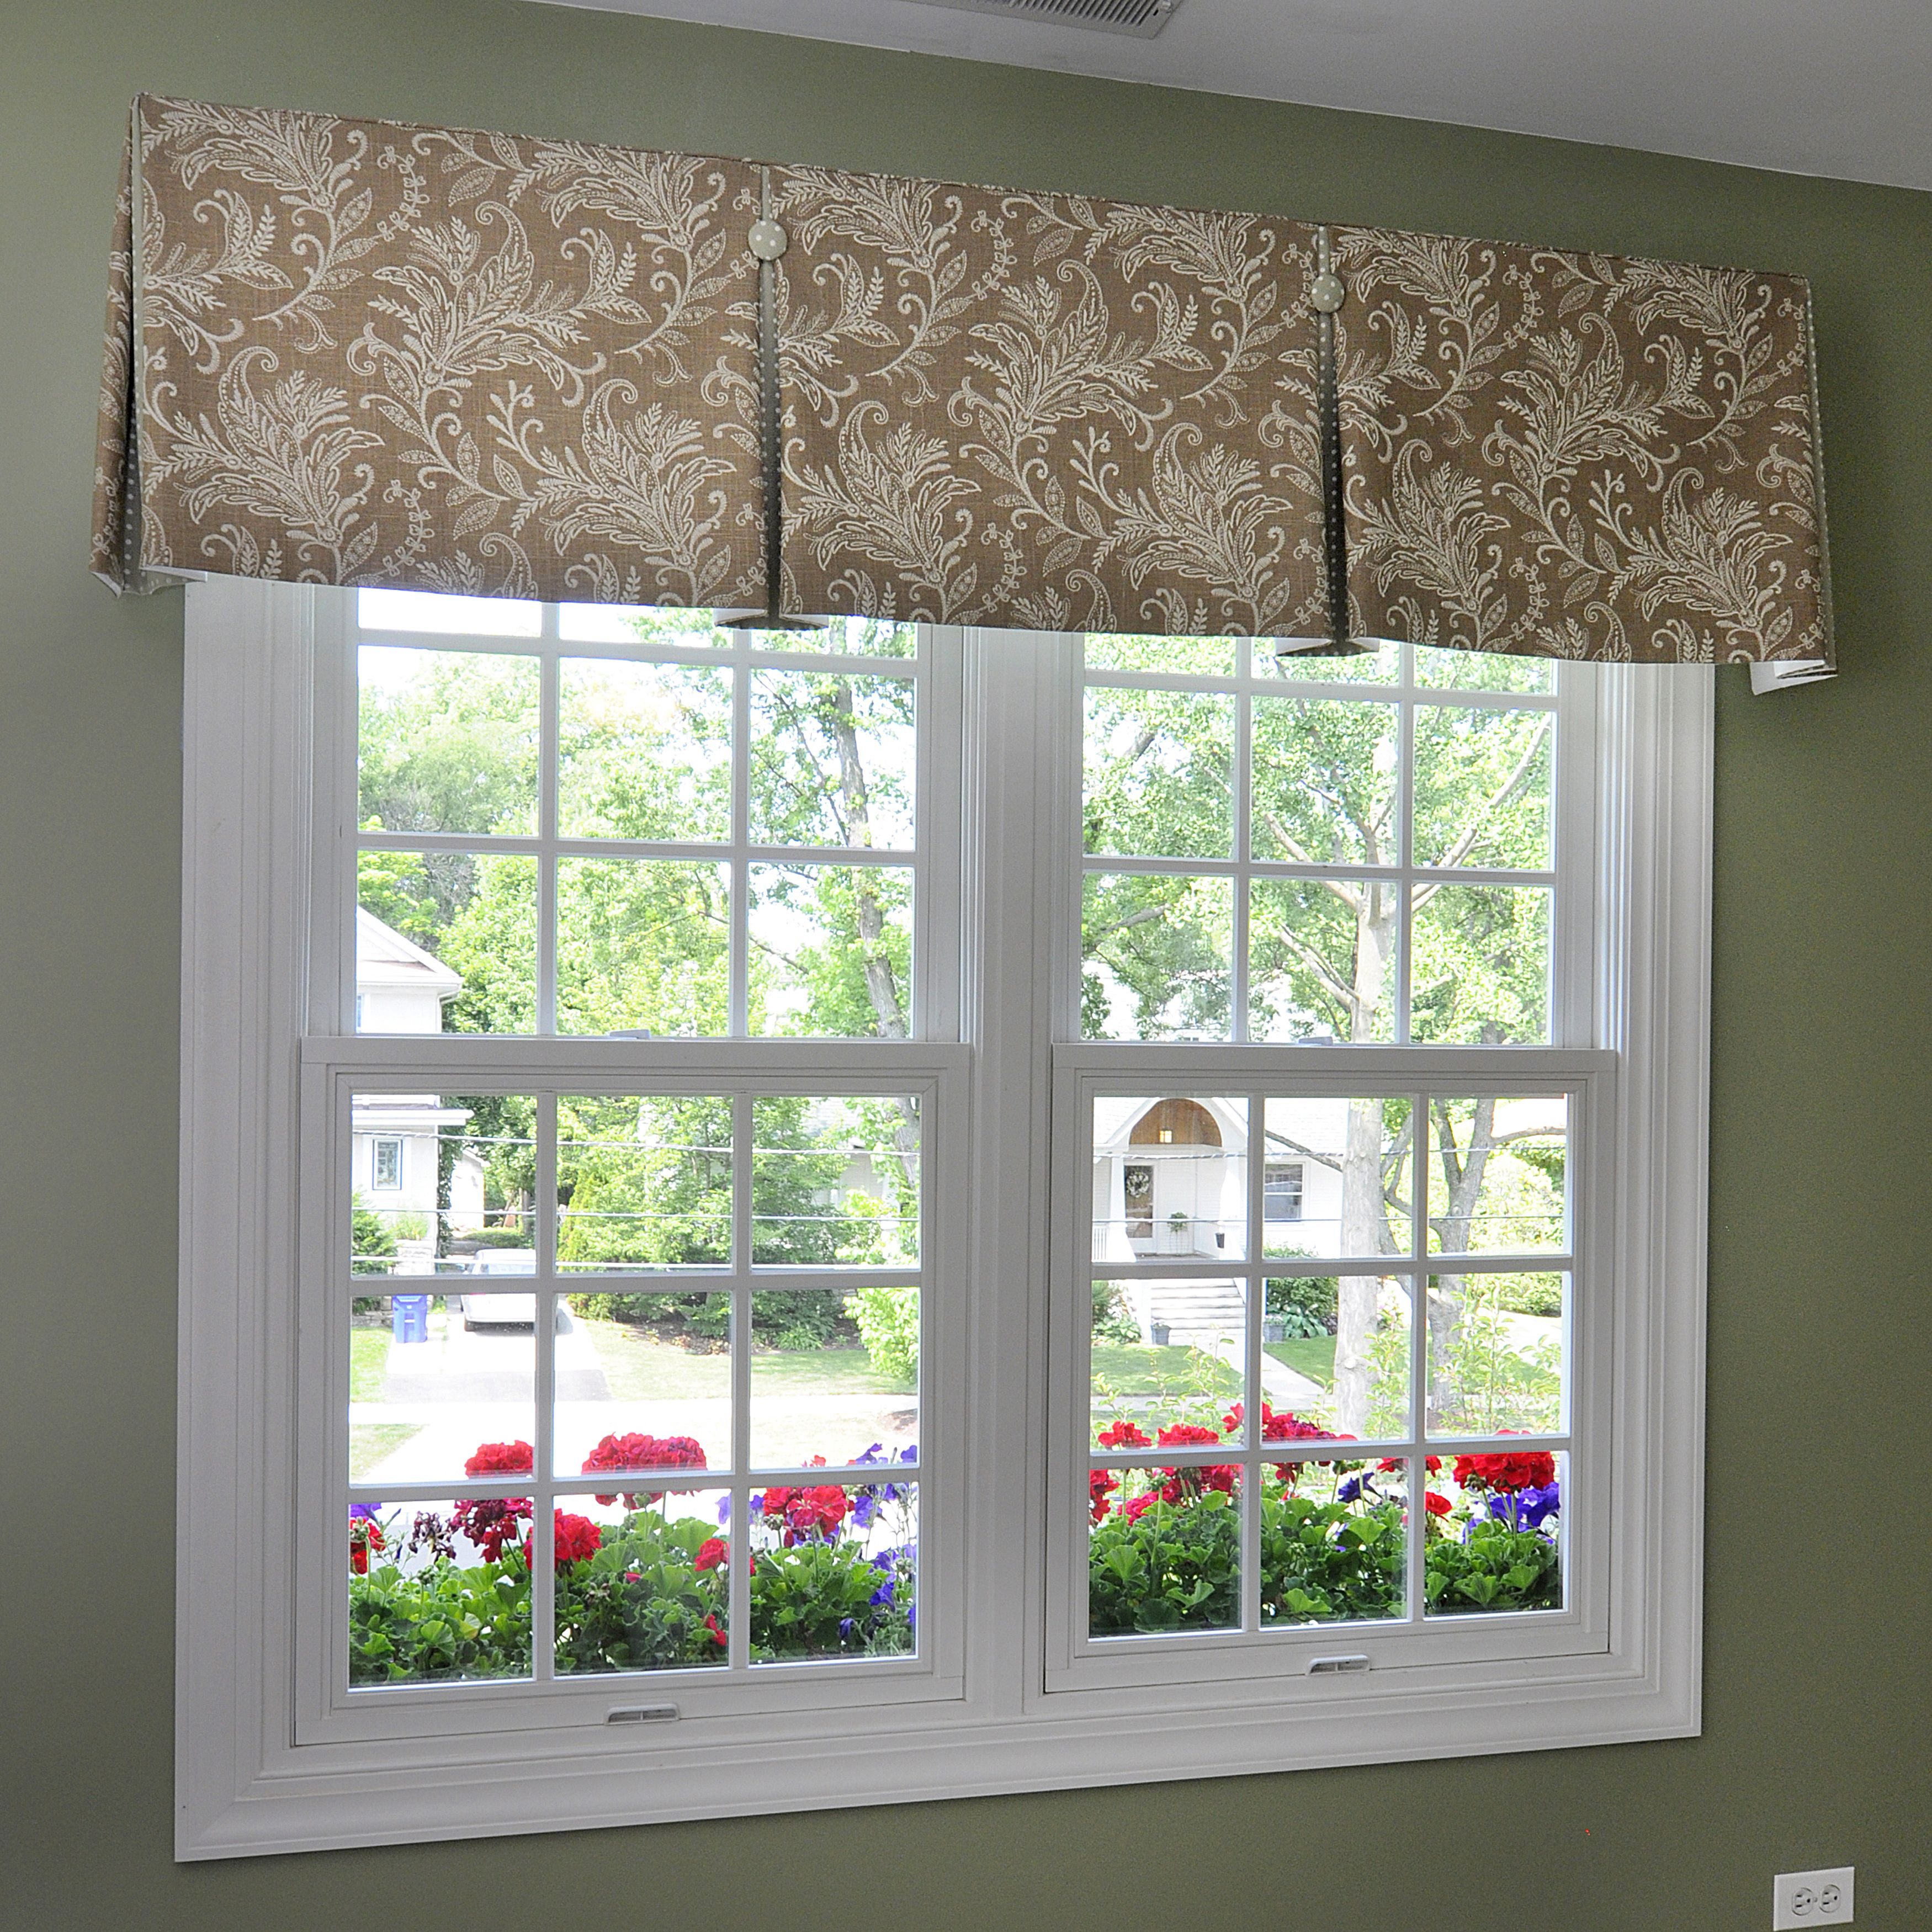 Kitchen Curtain Fabric For Sale Lowes Remodel Inverted Box Pleat Valance With Contrast Pleats And